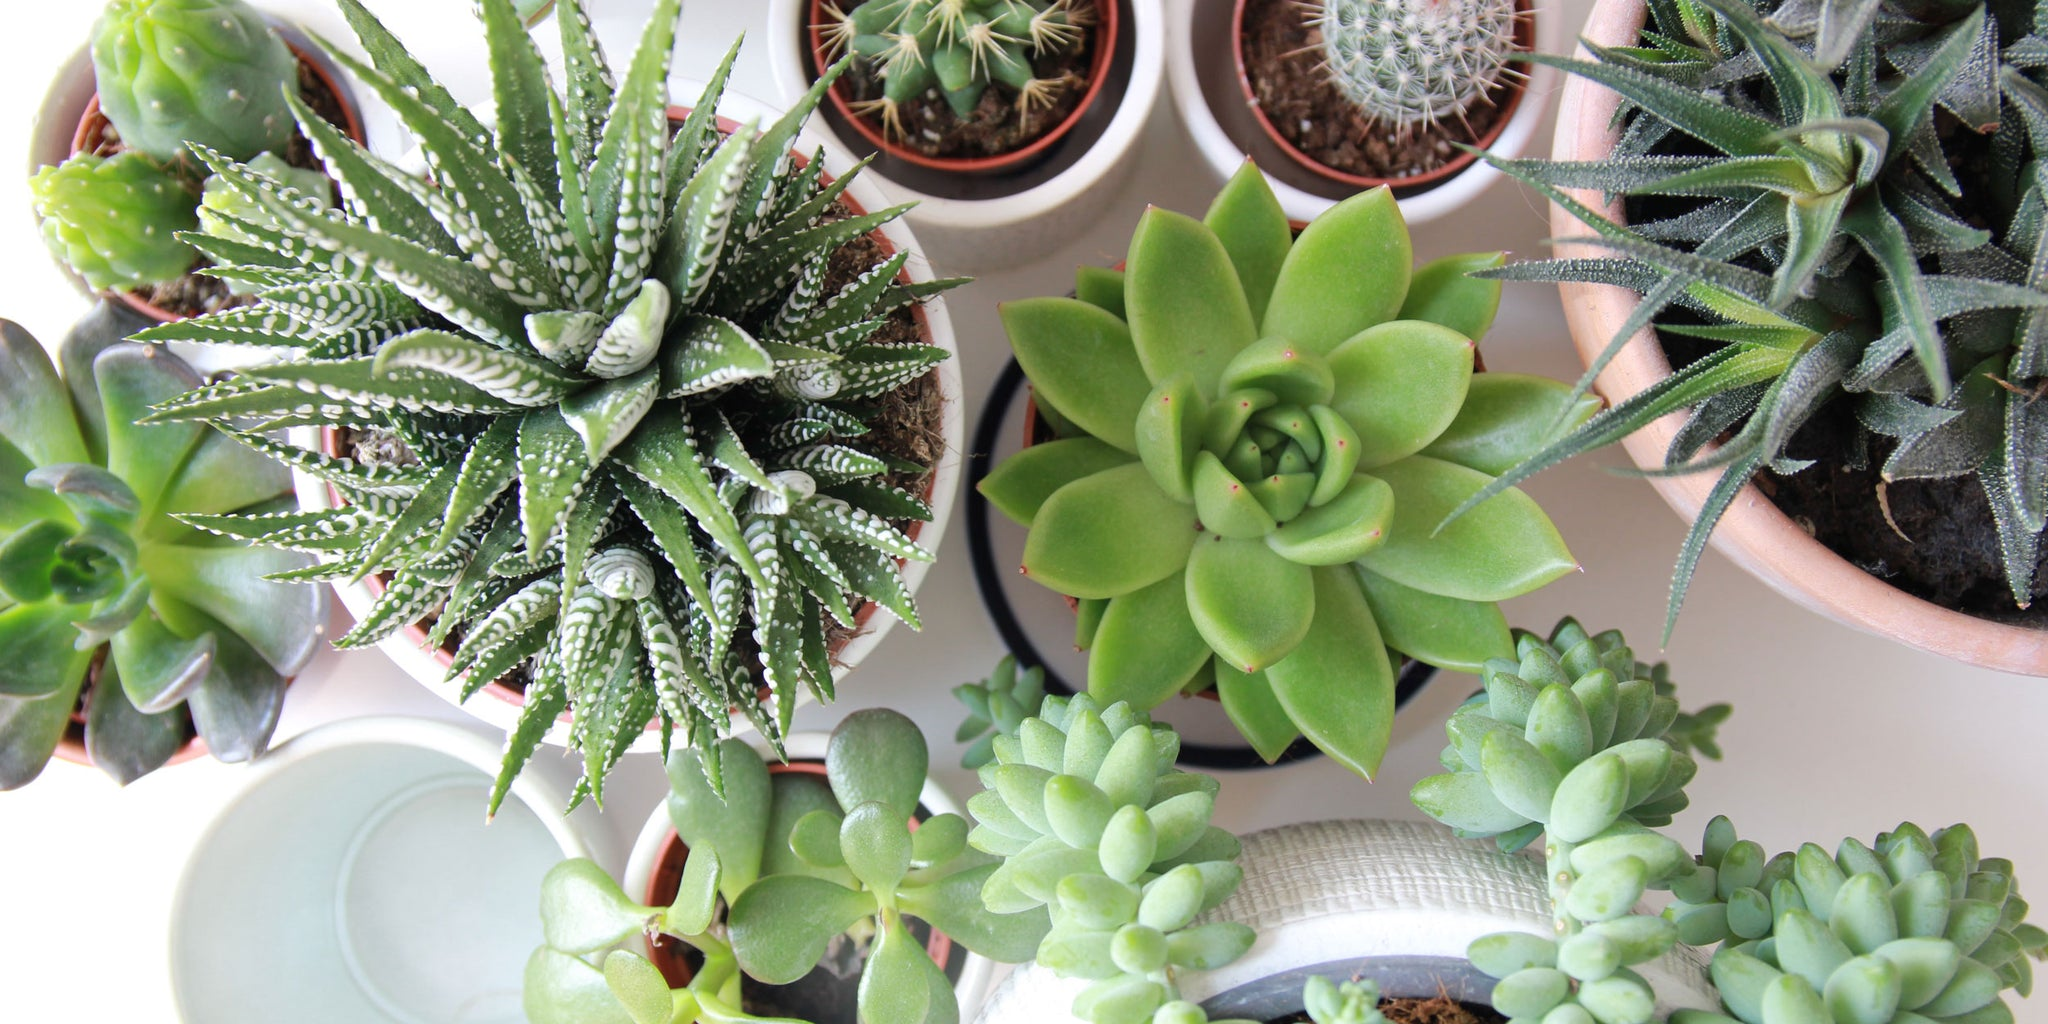 5 Galentine's Day Gift Ideas for 2021 (For Galentine's Near or Far) Plant Babies | Patio Essentials